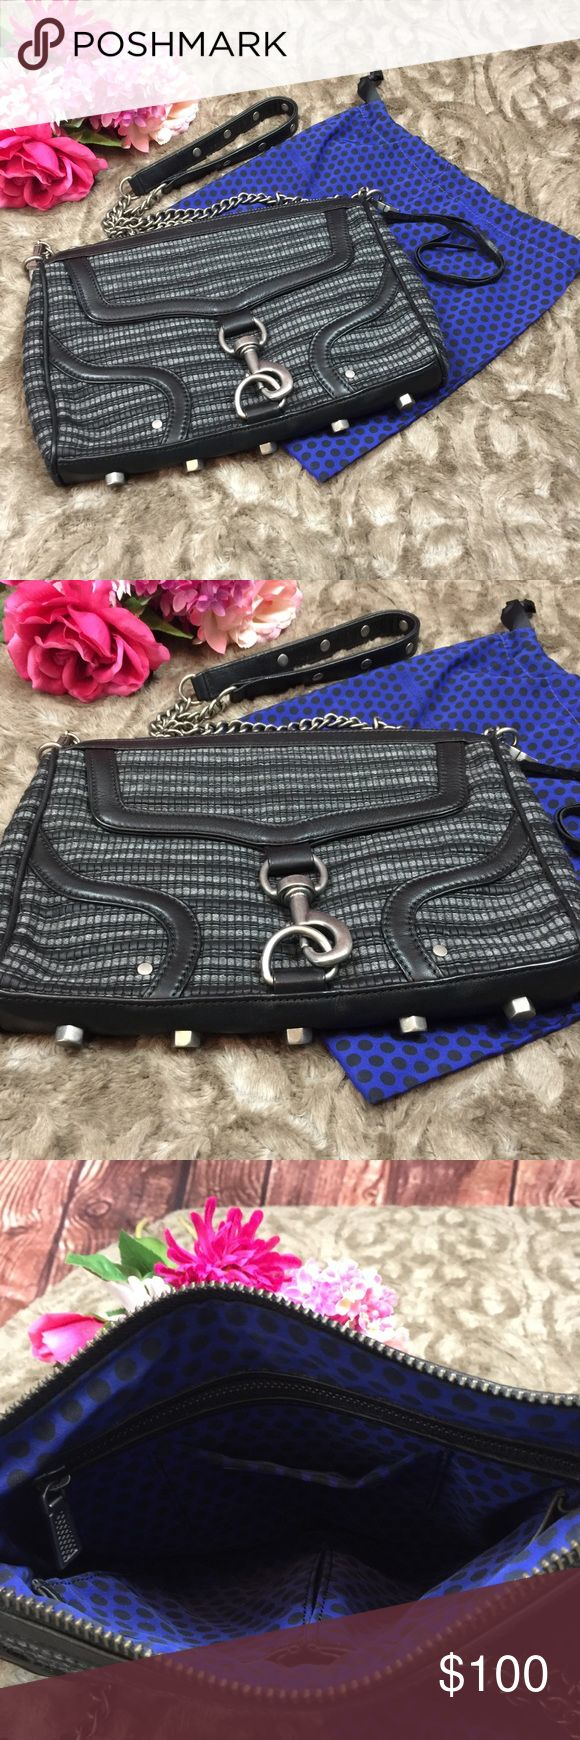 Rebecca Minkoff MAC Woven Fabric Bombe Clutch Rebecca Minkoff MAC IN EXCELLENT CONDITION !!!! woven fabric Gray/ Black tweed Bombe clutch bag . Textured tweed crossbody with removable strap . Can be worn as a shoulder or crossbody . Pewter colored hardware throughout handbag . Top zipper opens to blue & black polka dot lining comes with matching dust bag . Interior has standard 3 pockets 1 zippered and 2 open media type pockets  Measures  11.5X8.5X2 with a 22 inch drop at strap  Dust bag…